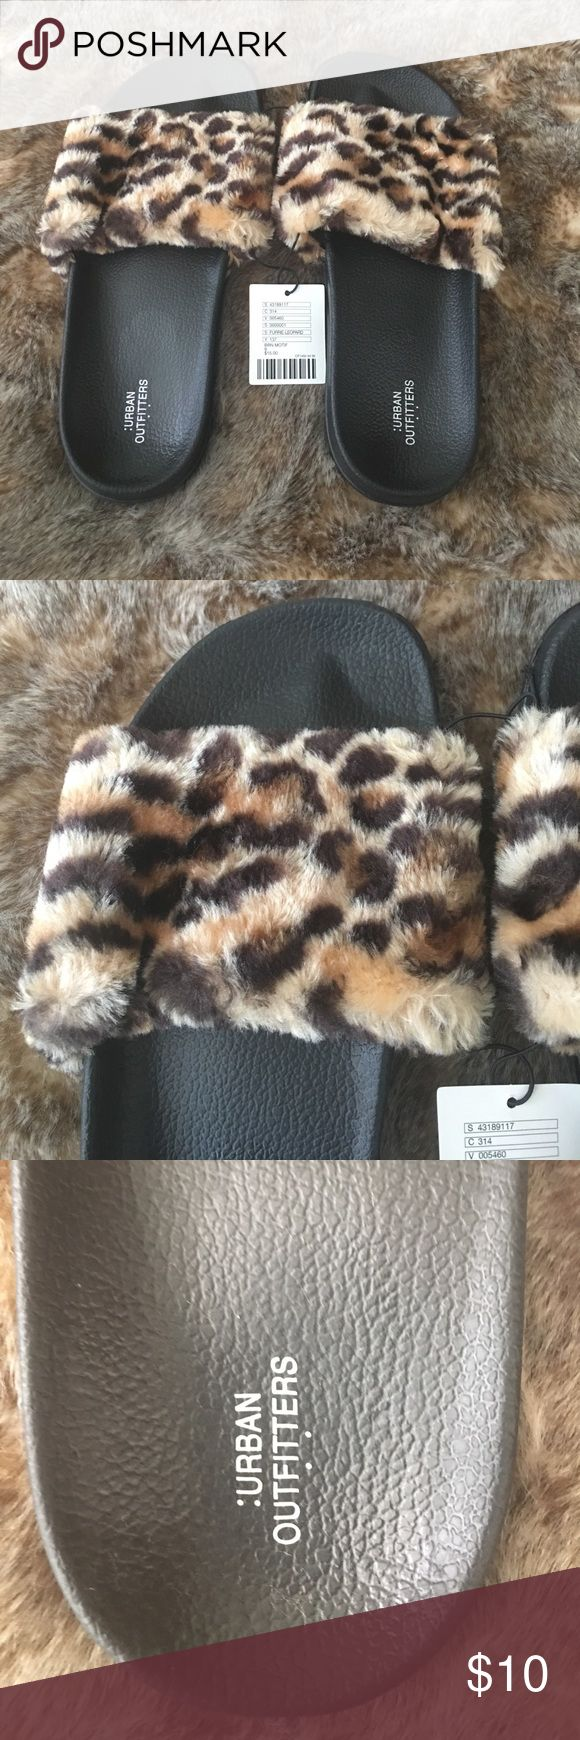 Urban Outfitters Leopard Slip On Sandals Brand New with Tags ! Women's size 8. Soft Leopard material at top, black bottoms. Urban Outfitters Shoes Sandals